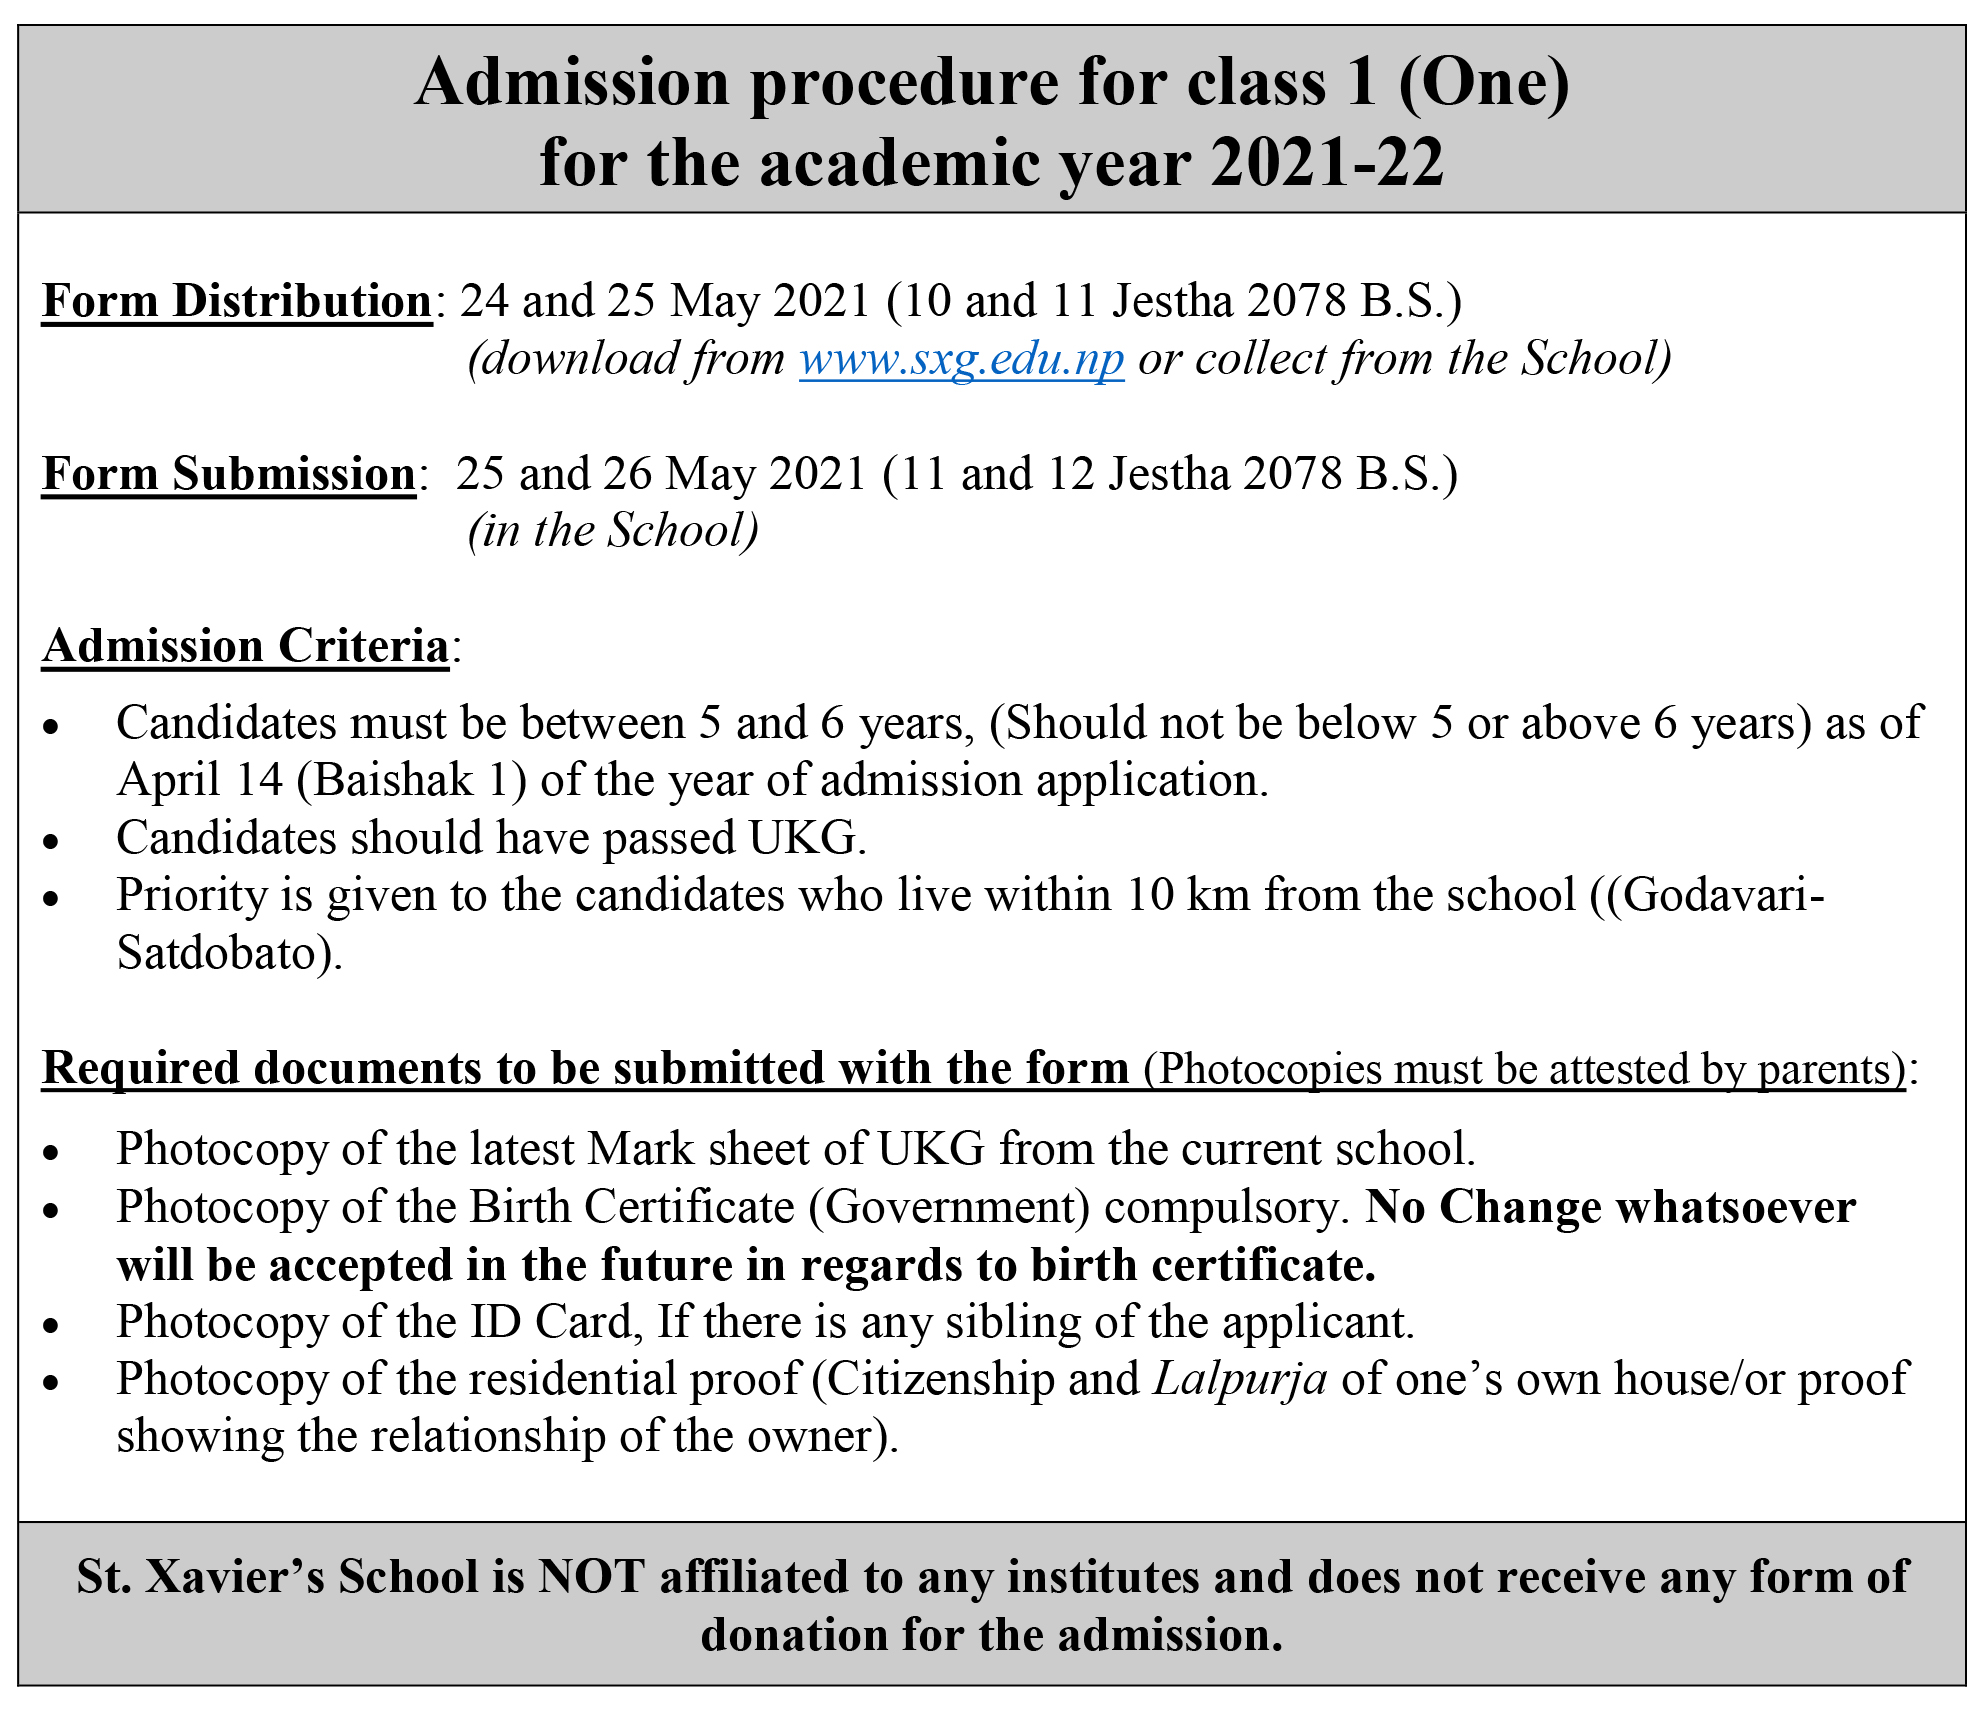 Admission Procedure for the academic year 2021-22